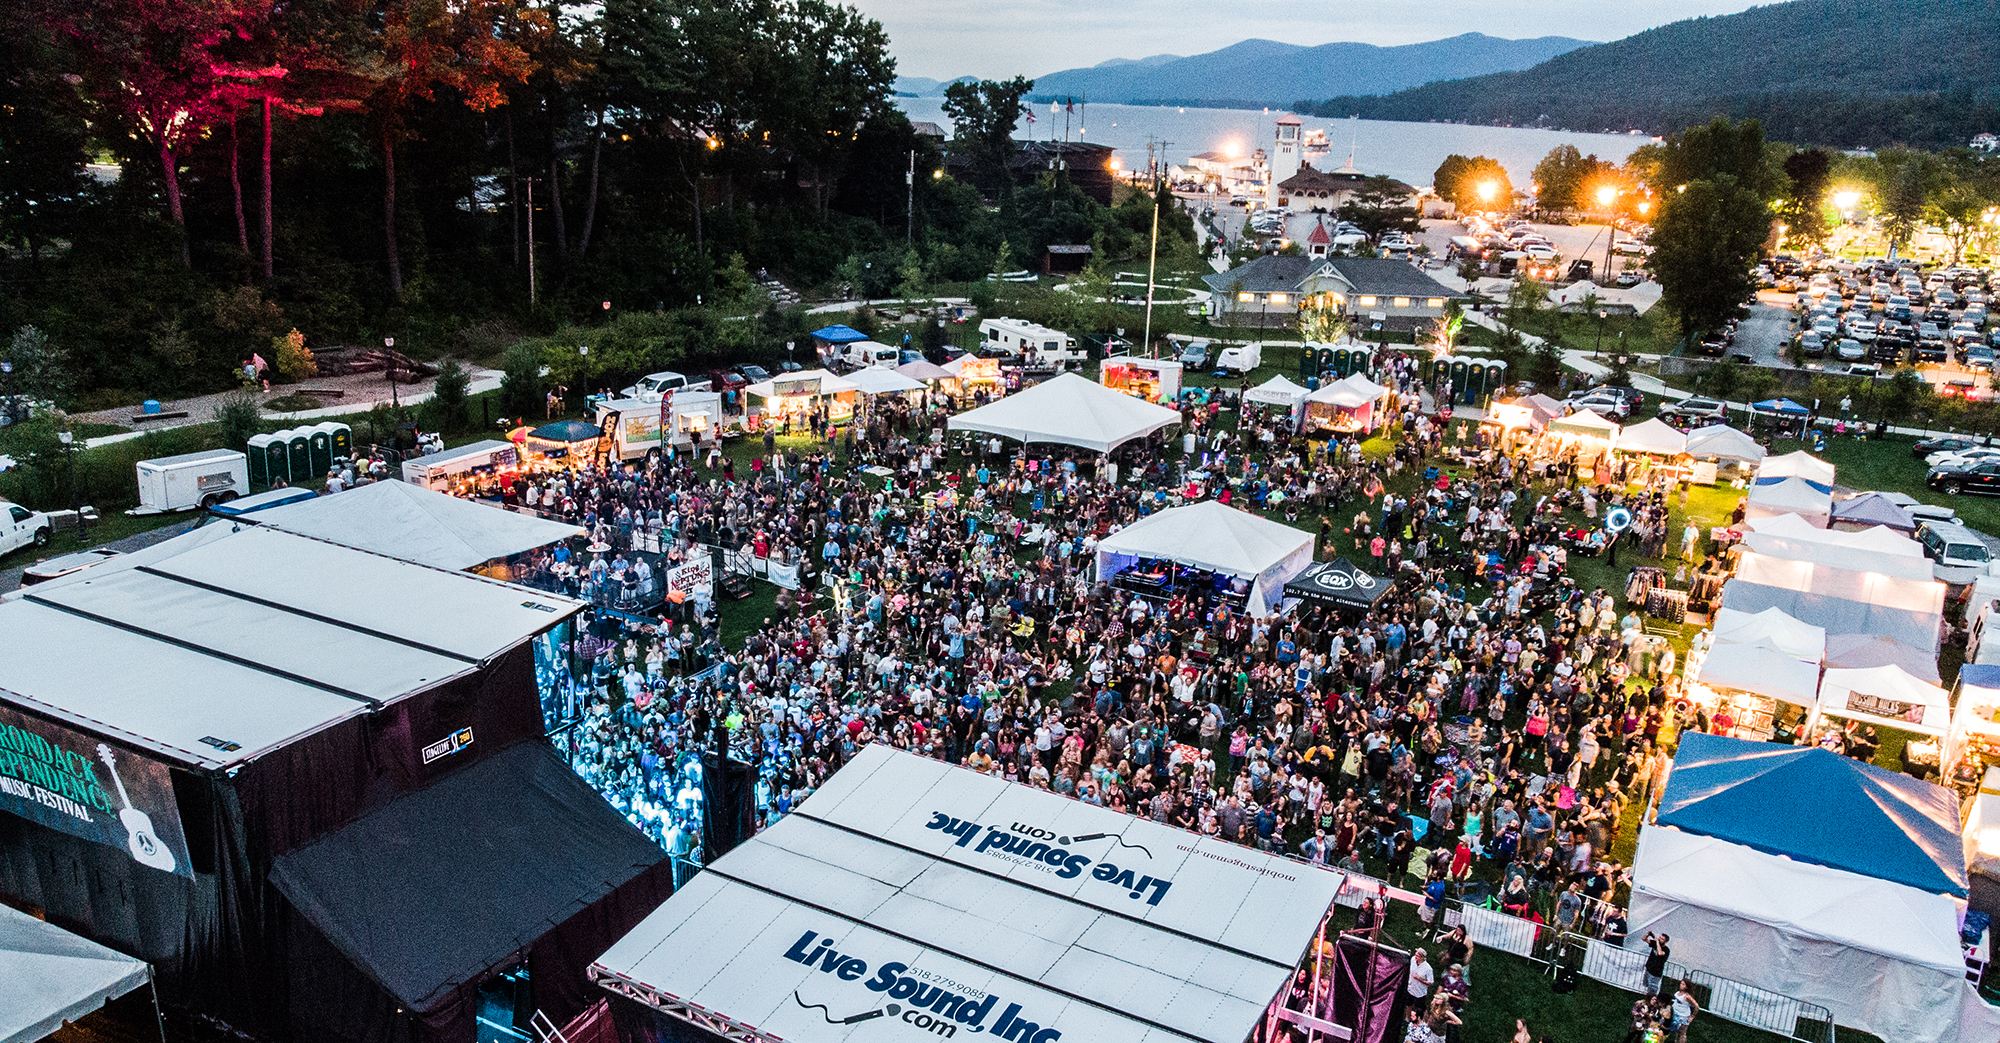 PREVIEW: Adirondack Independence Music Festival 2019